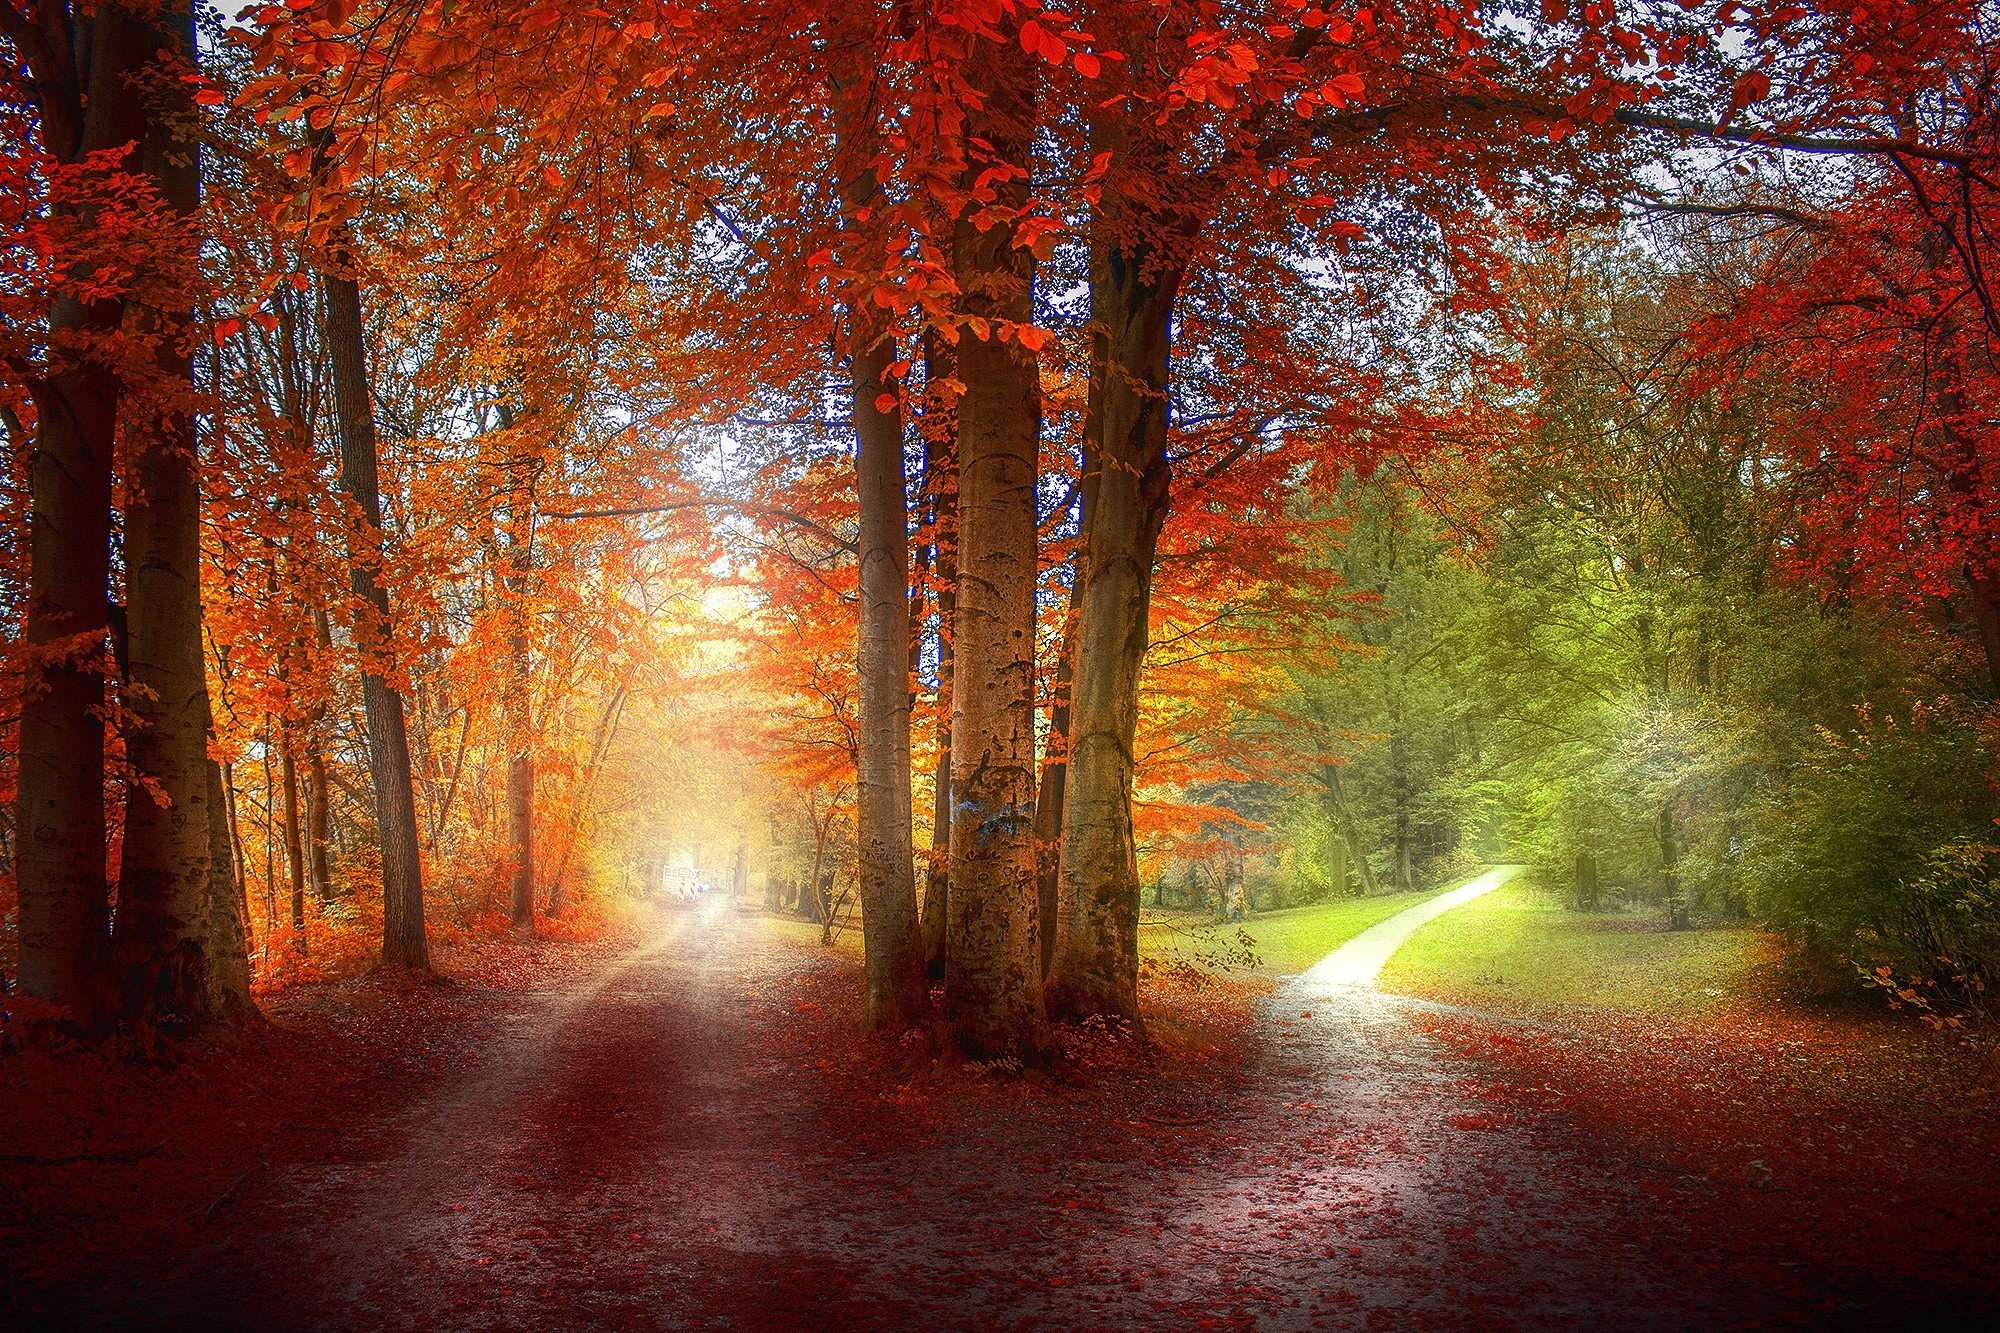 Free Widescreen Wallpaper Fall Two Tracks In The Autumn Forest Wallpapers And Images